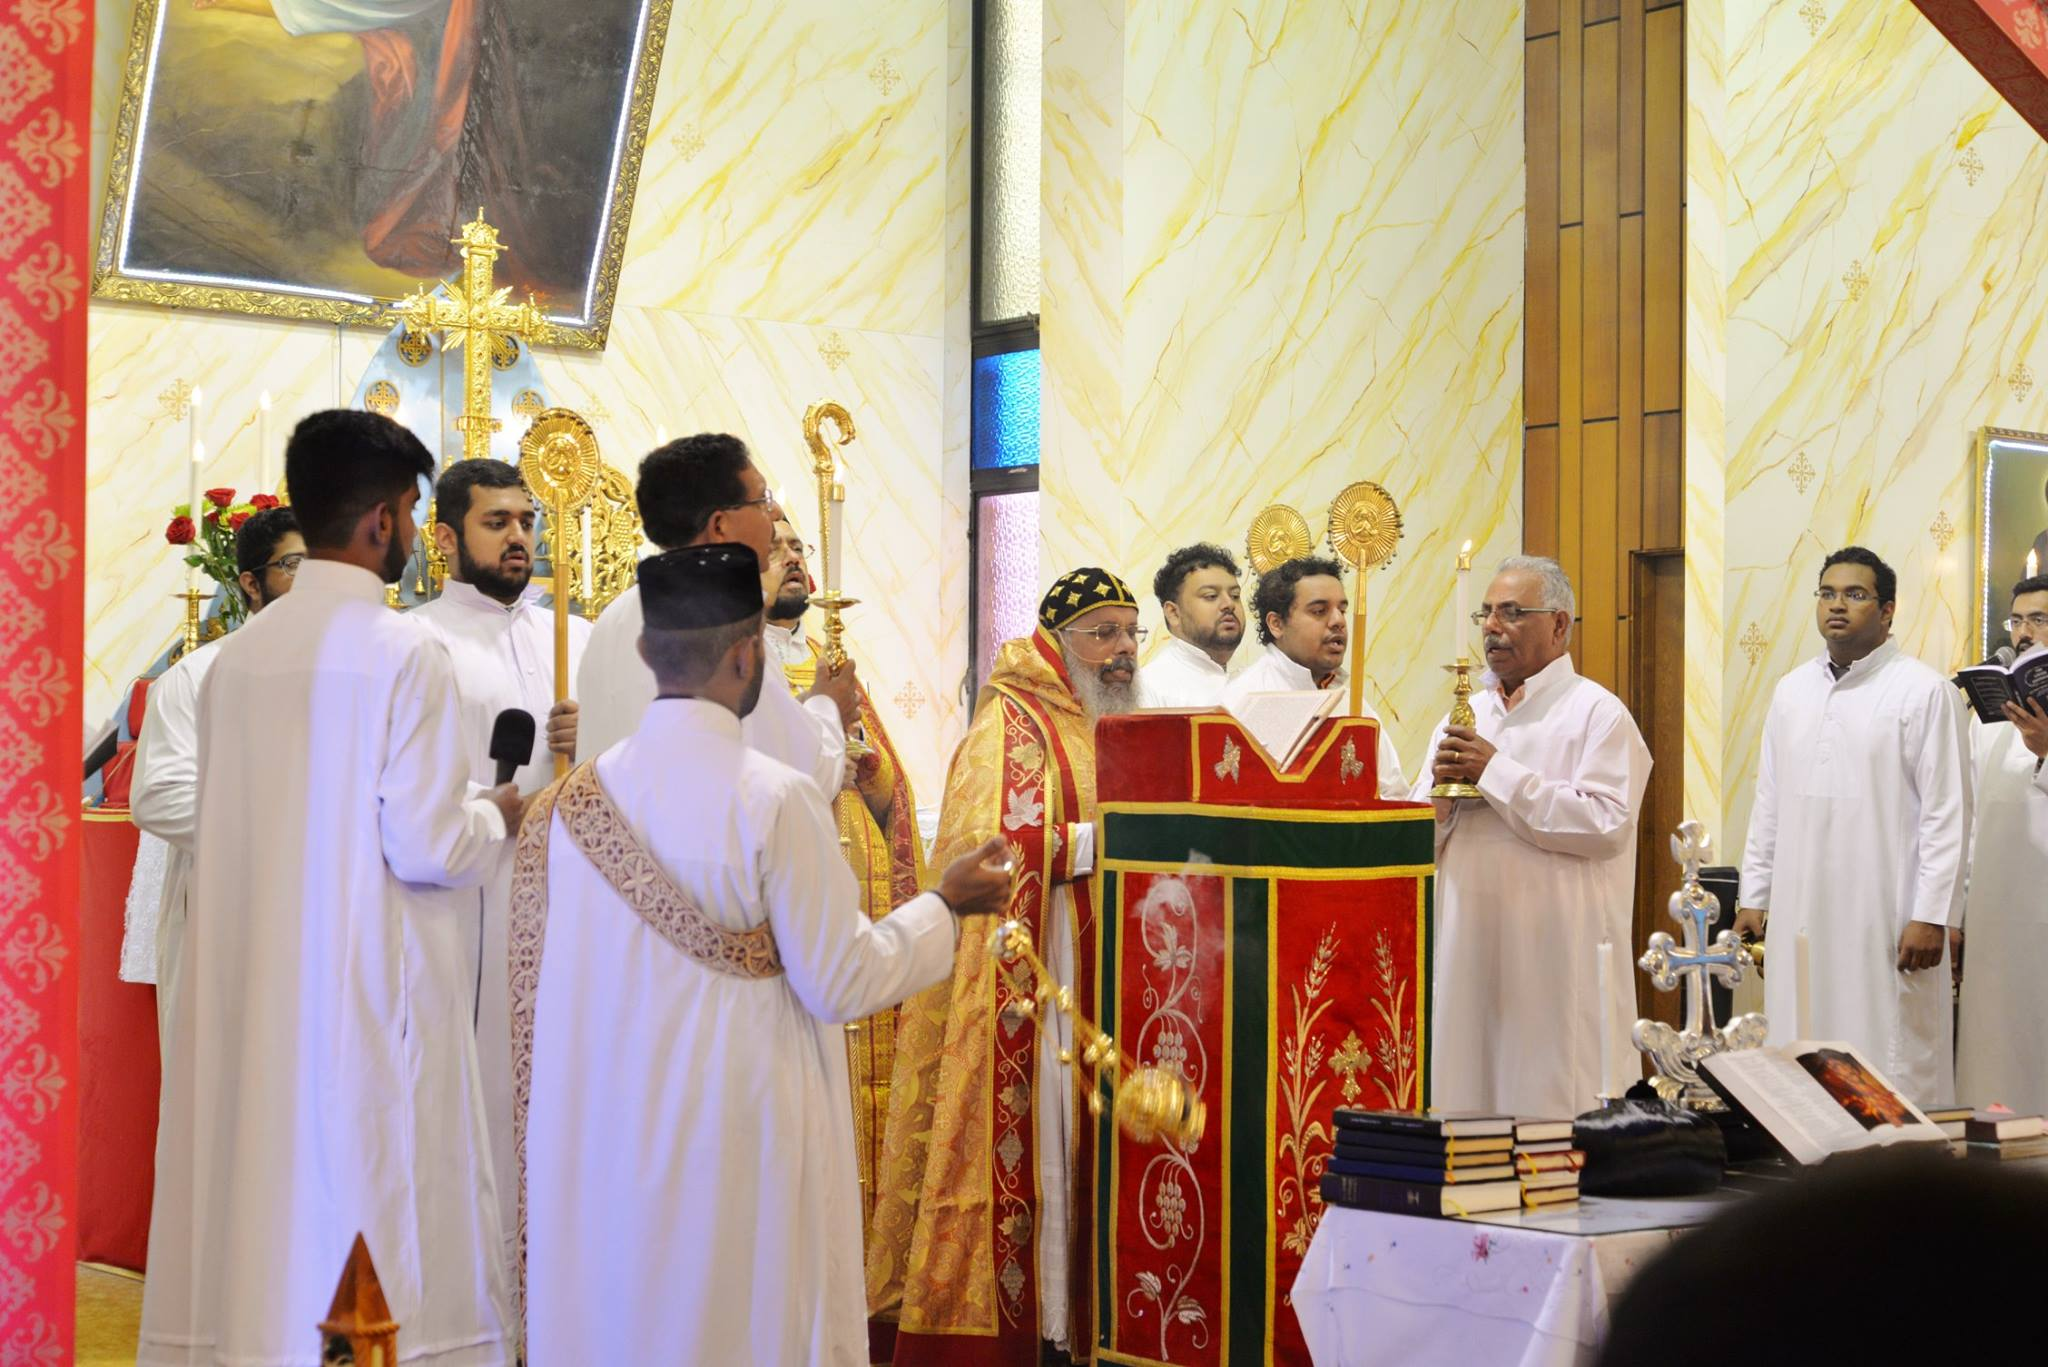 2016 Perunal (Feast of St Gregorios of Parumala, Patron Saint of St Gregorios Cathedral)  on Oct 30th at Bellwood